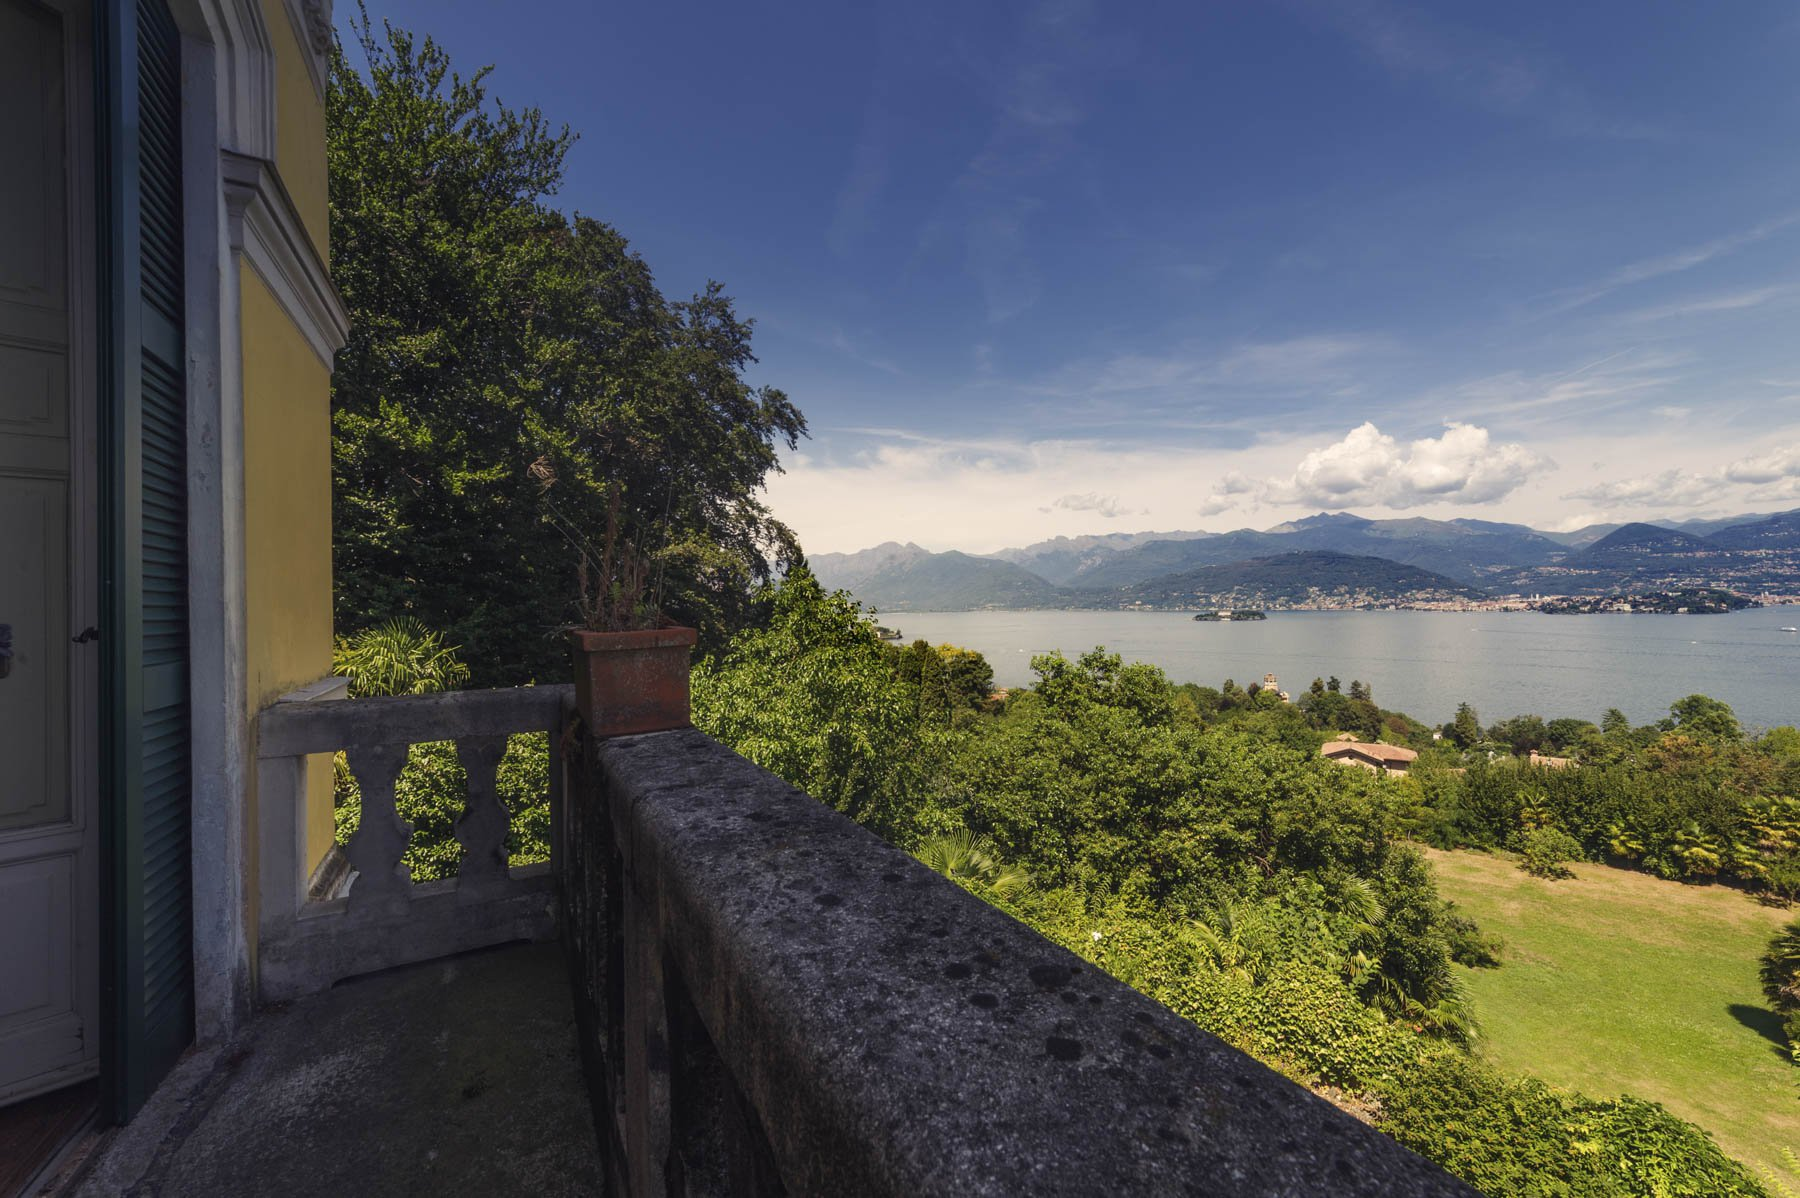 Luxurious apartment for sale in Stresa - lake view terrace